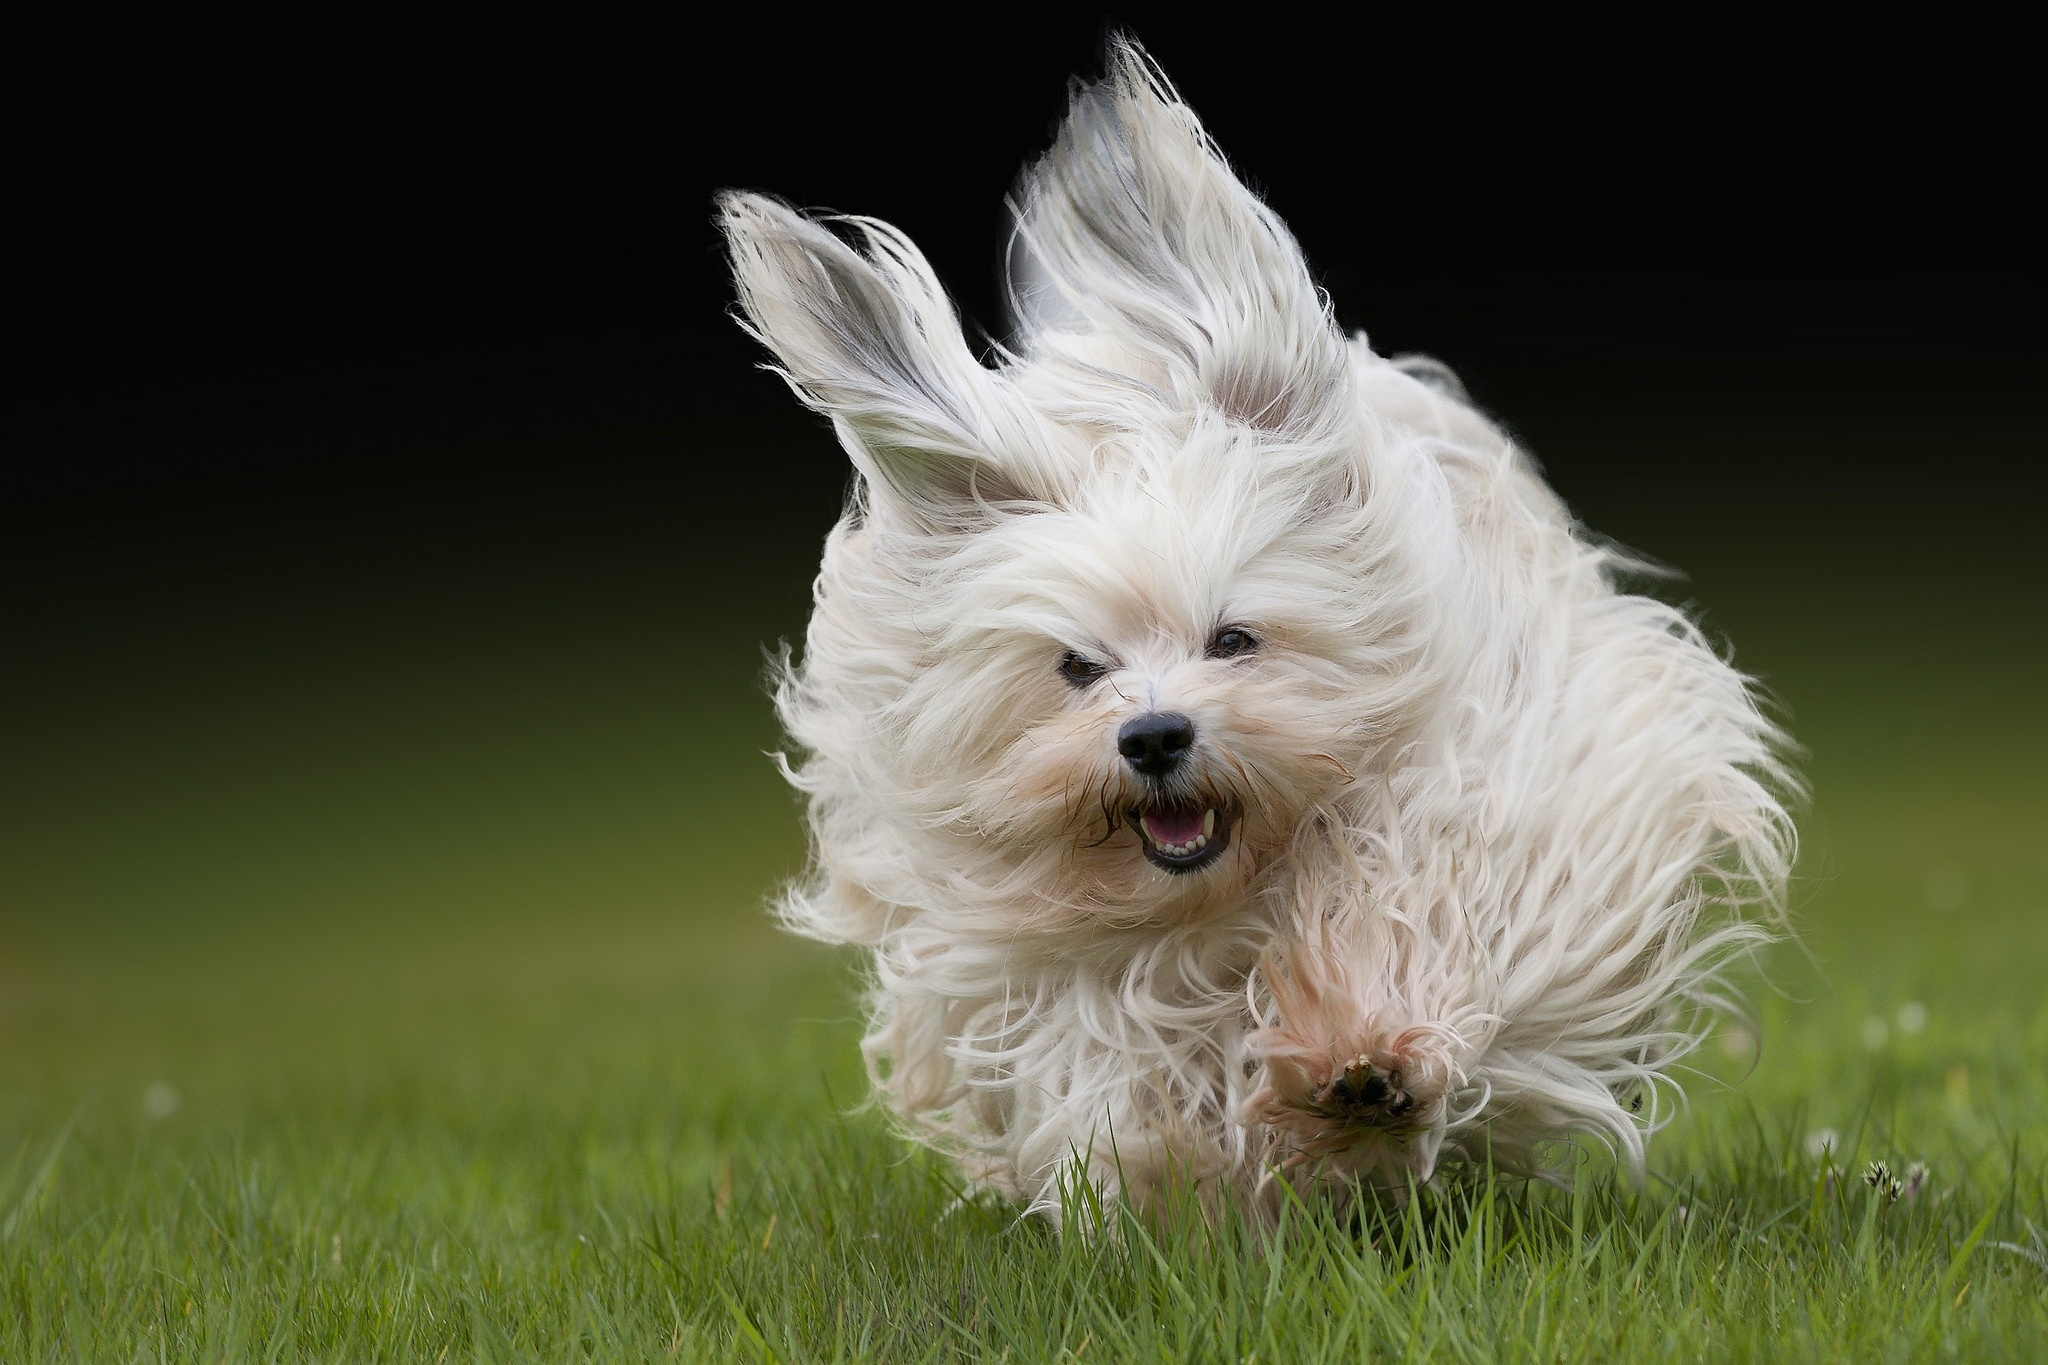 15931 download wallpaper Animals, Dogs screensavers and pictures for free